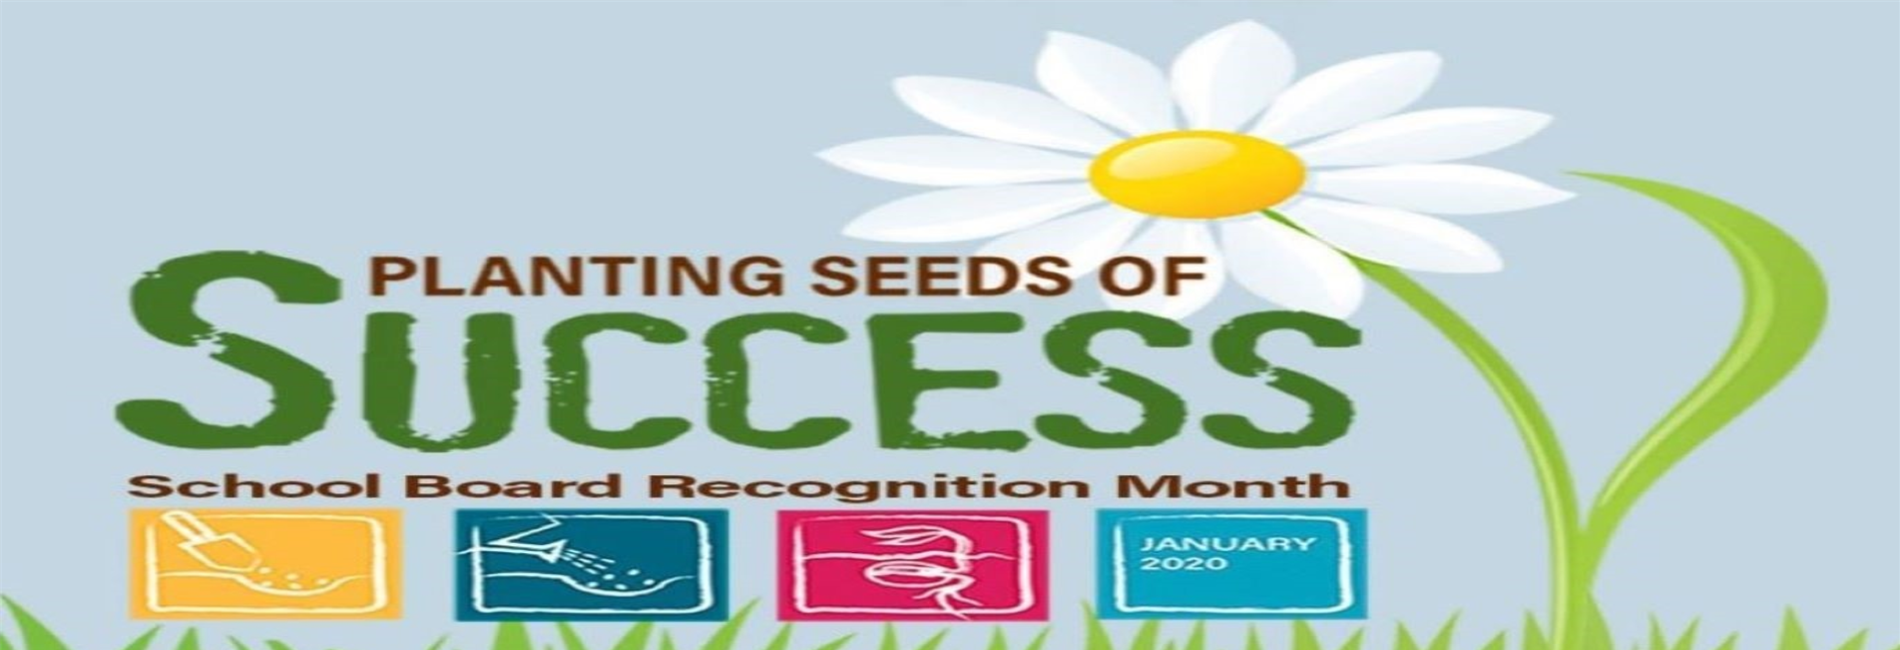 planting seeds for success